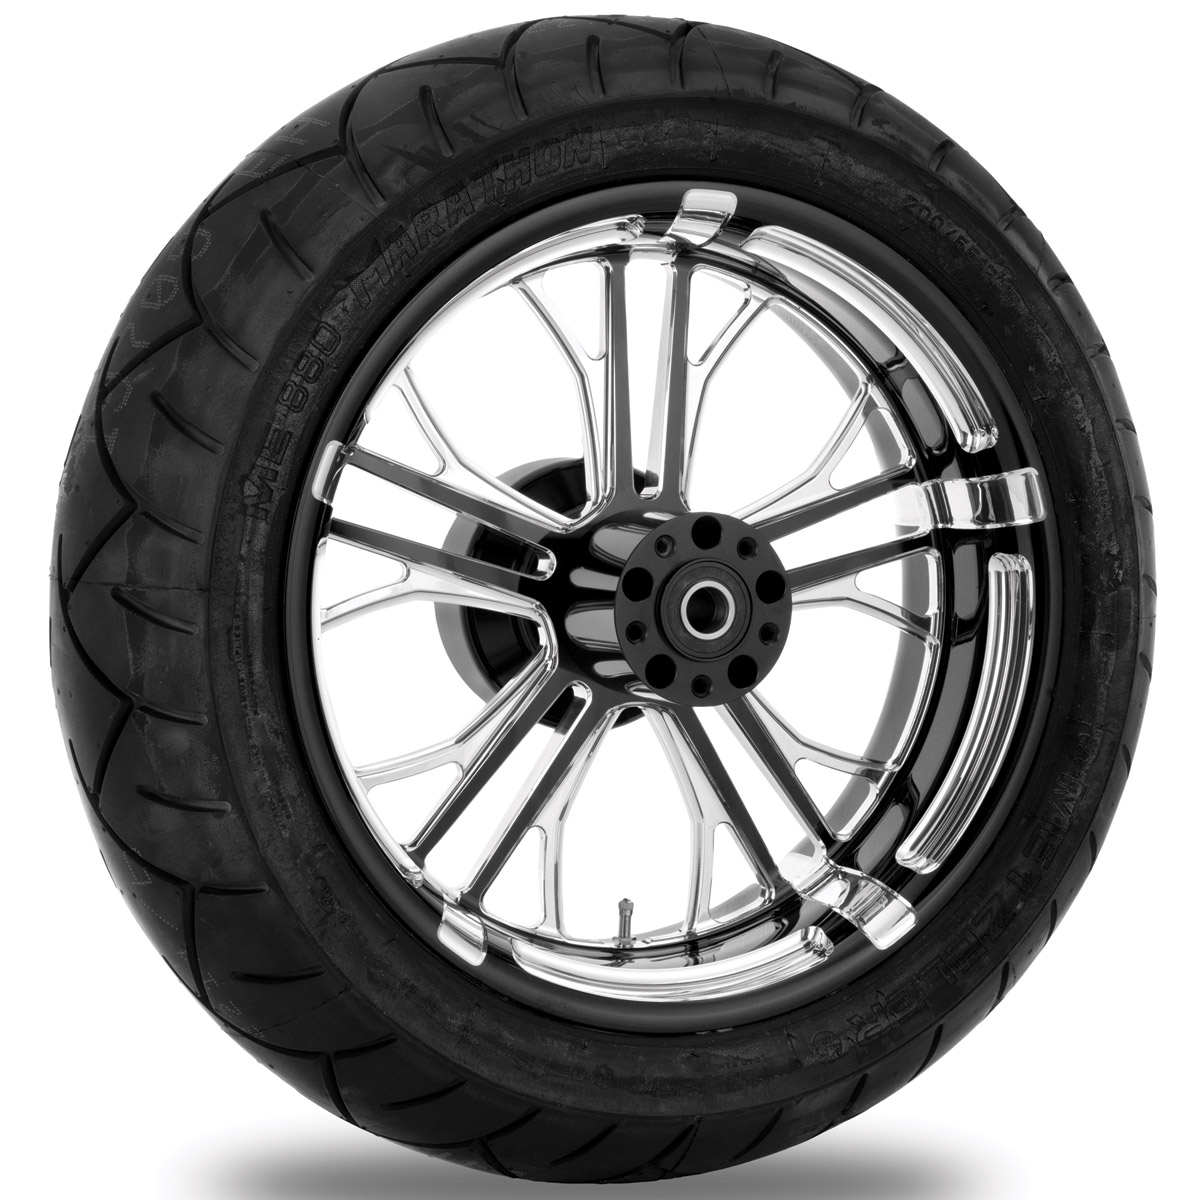 Performance Machine Dixon Contrast Cut Platinum Rear Wheel Package, 17″ x 6″ with ABS